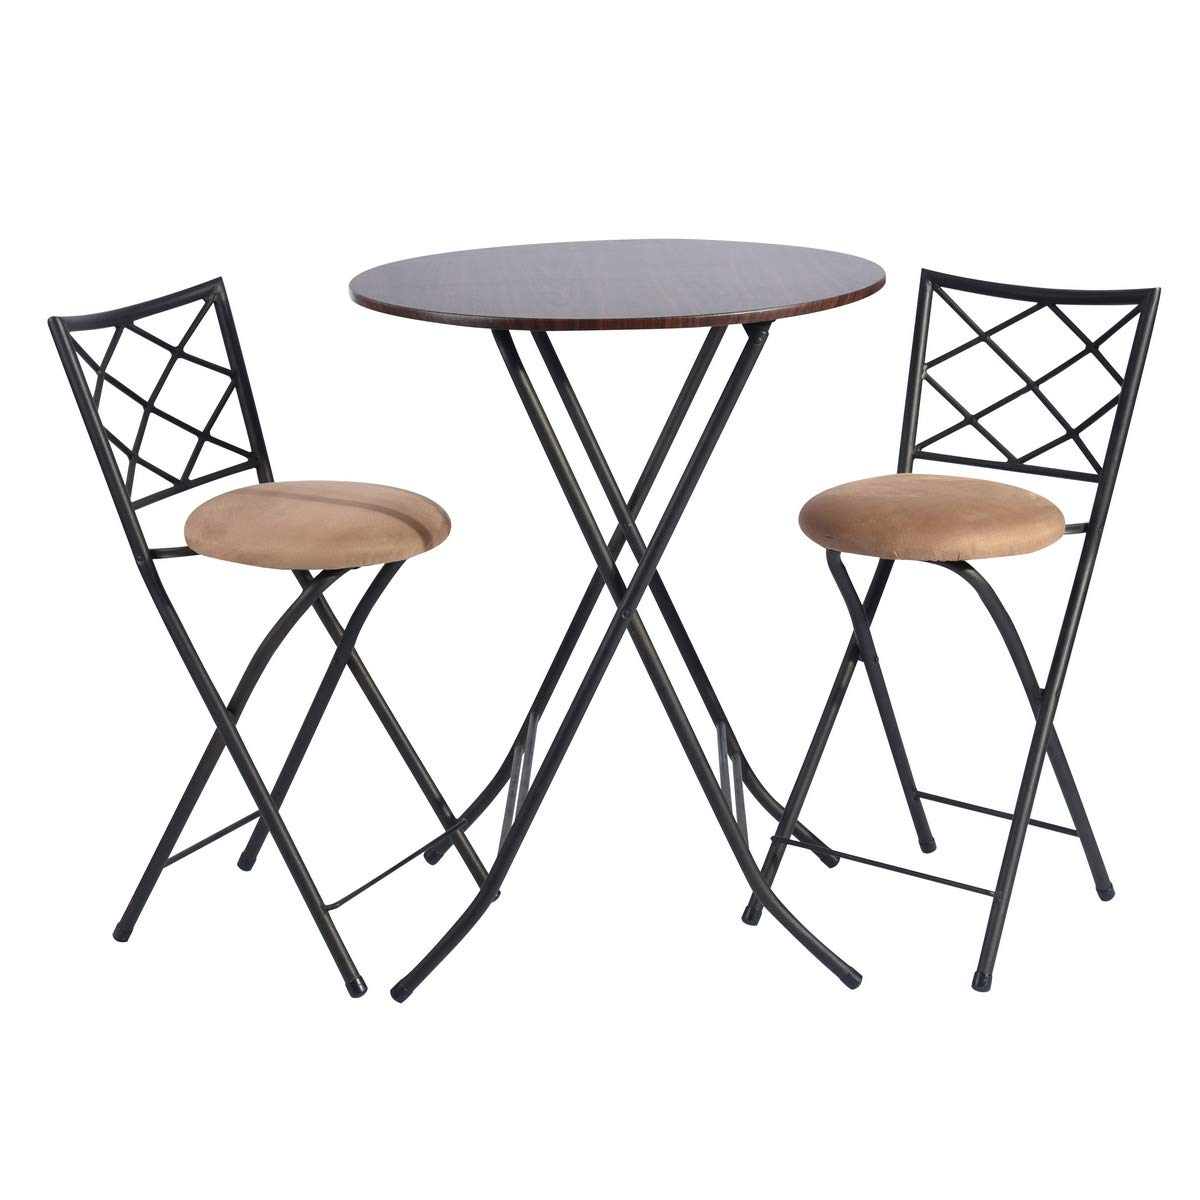 Framodo 3 Piece Folding Counter Height Pub Dining Table Set